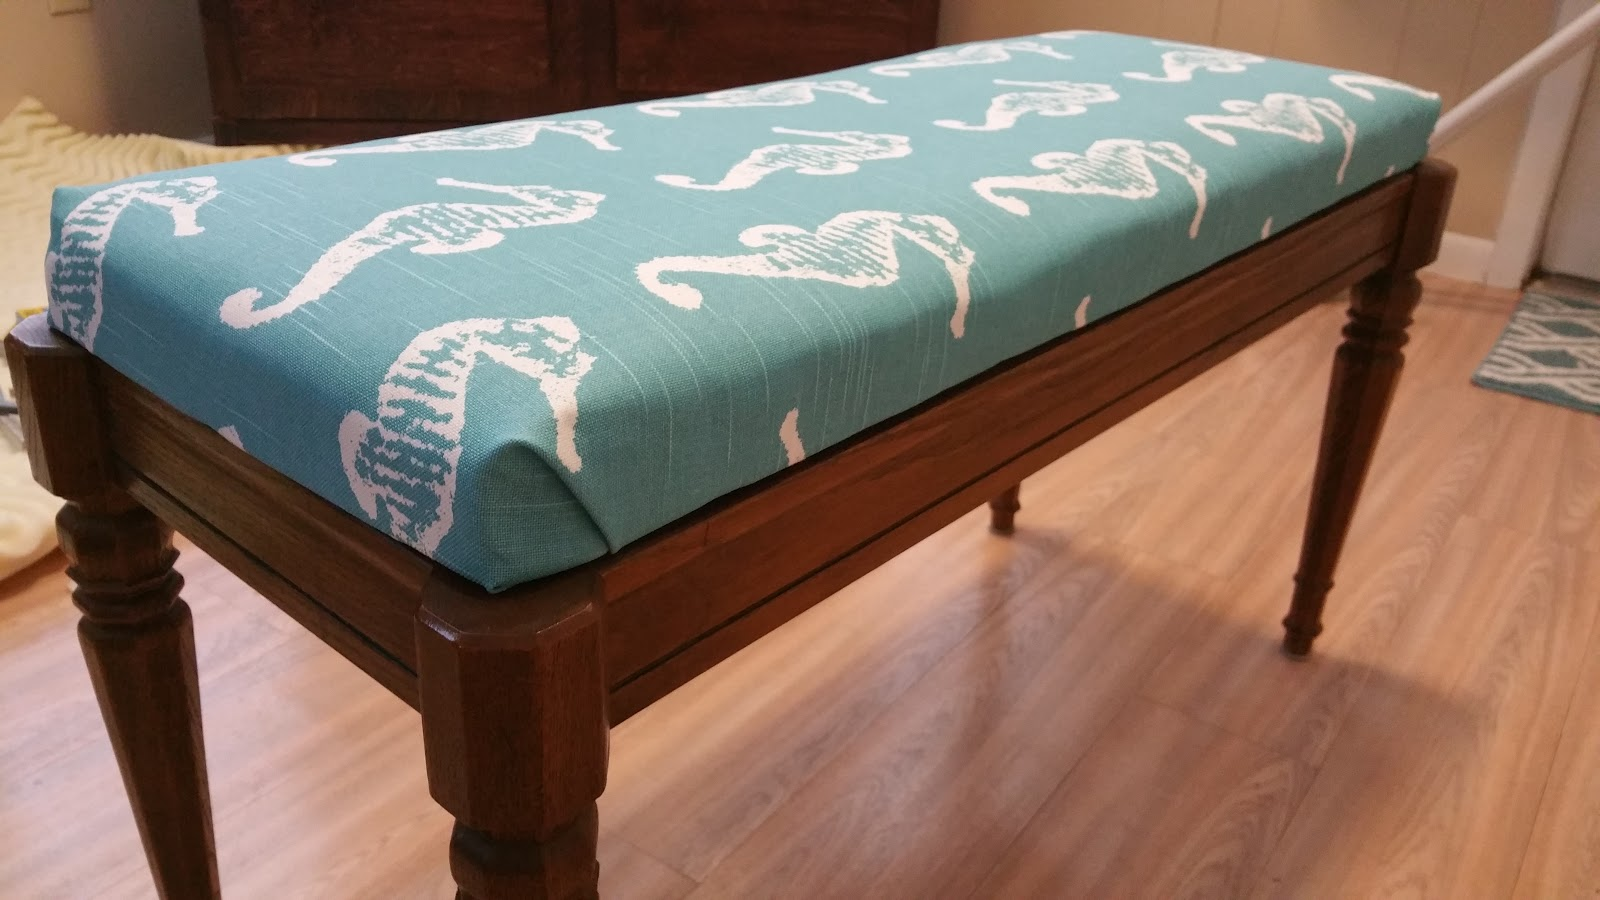 5ft Bench Seat Cushion | Garden Bench Pads | Piano Bench Cushion